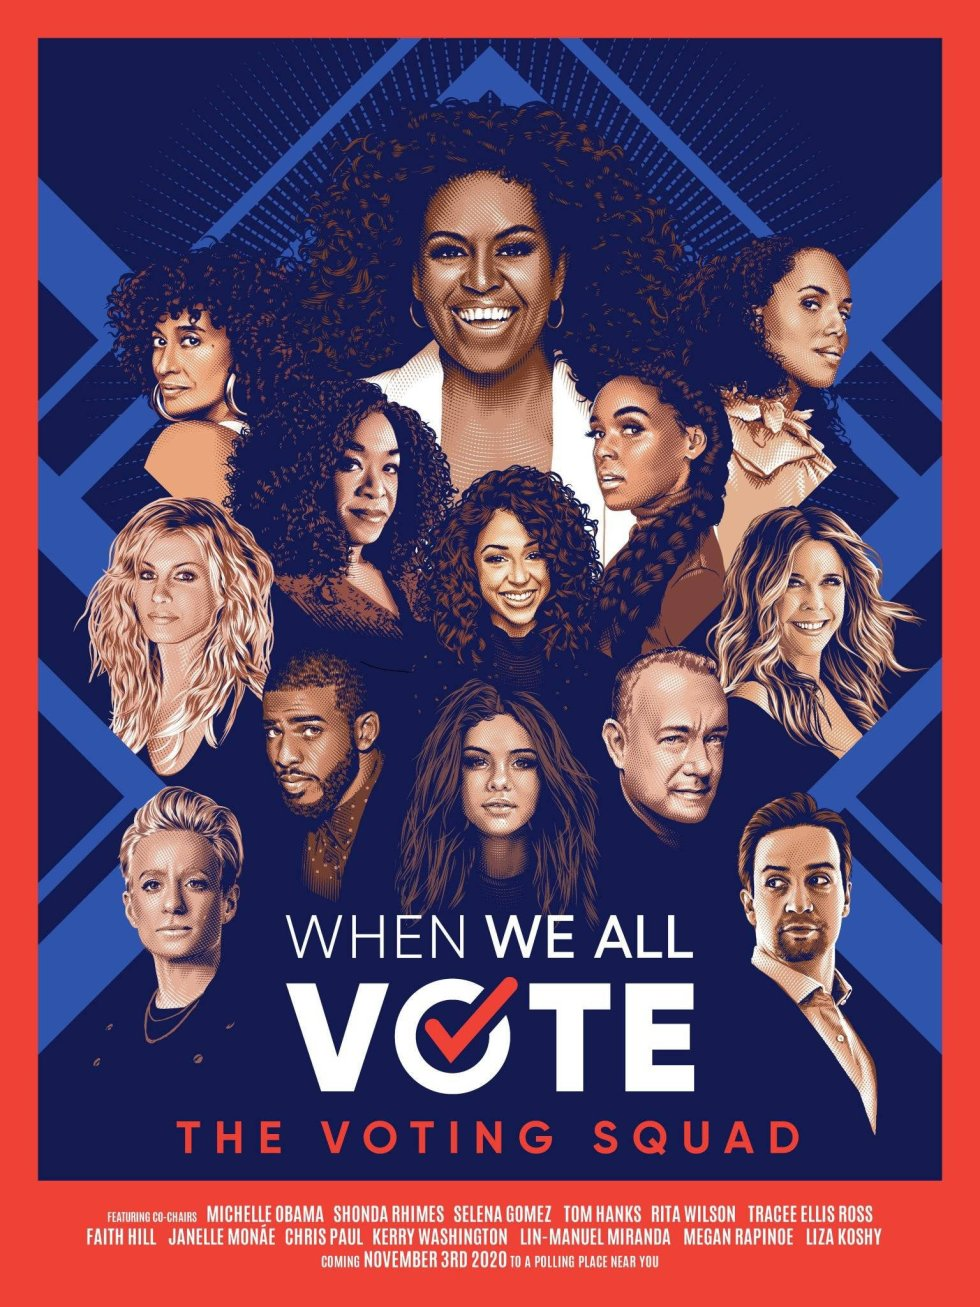 michelle obama and voting squad.jpg